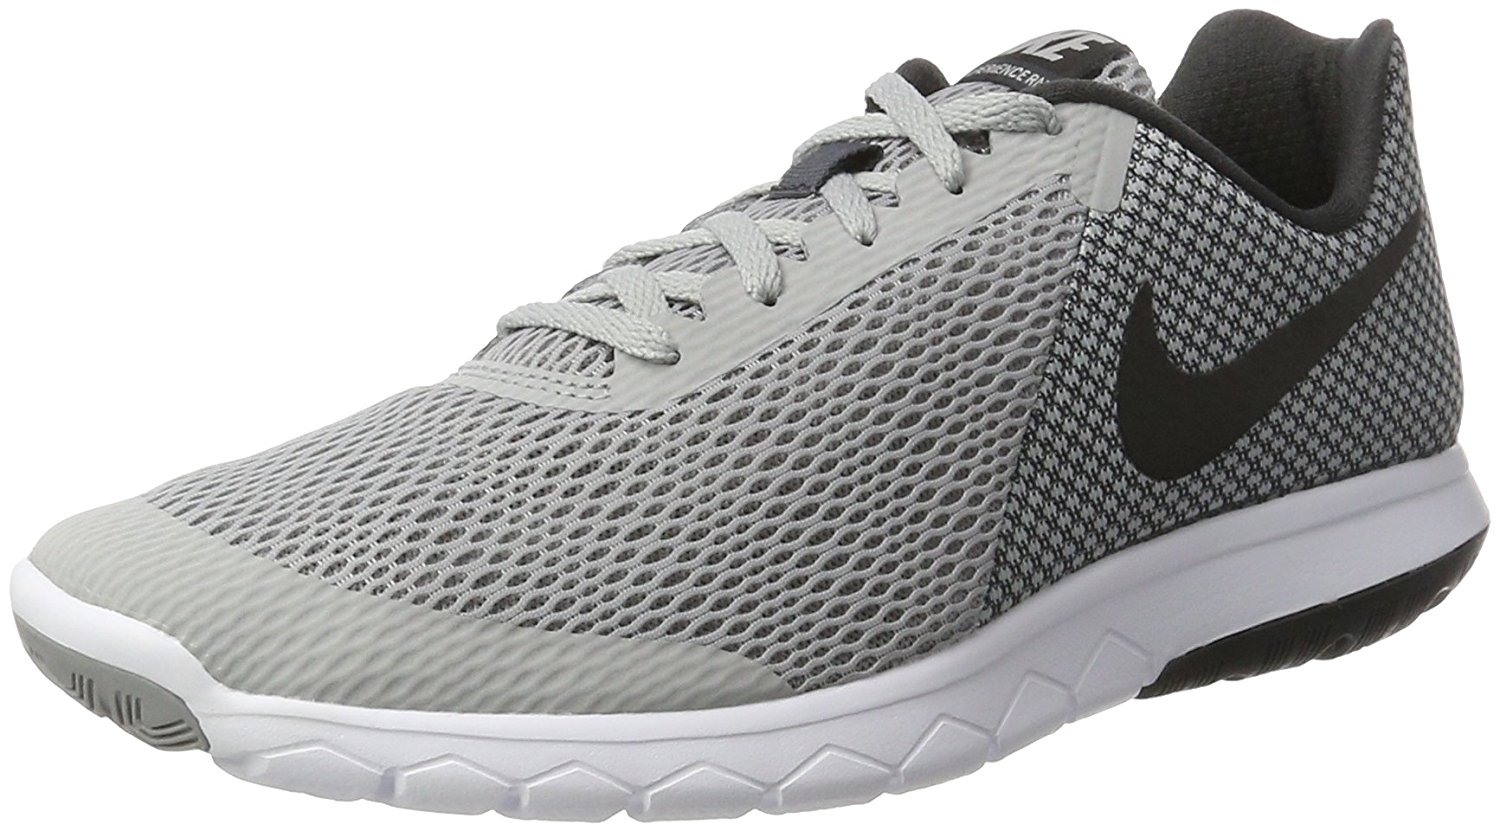 bf686700a91f1 Get Quotations · Nike Men s Flex Experience Rn 6 Running Shoe